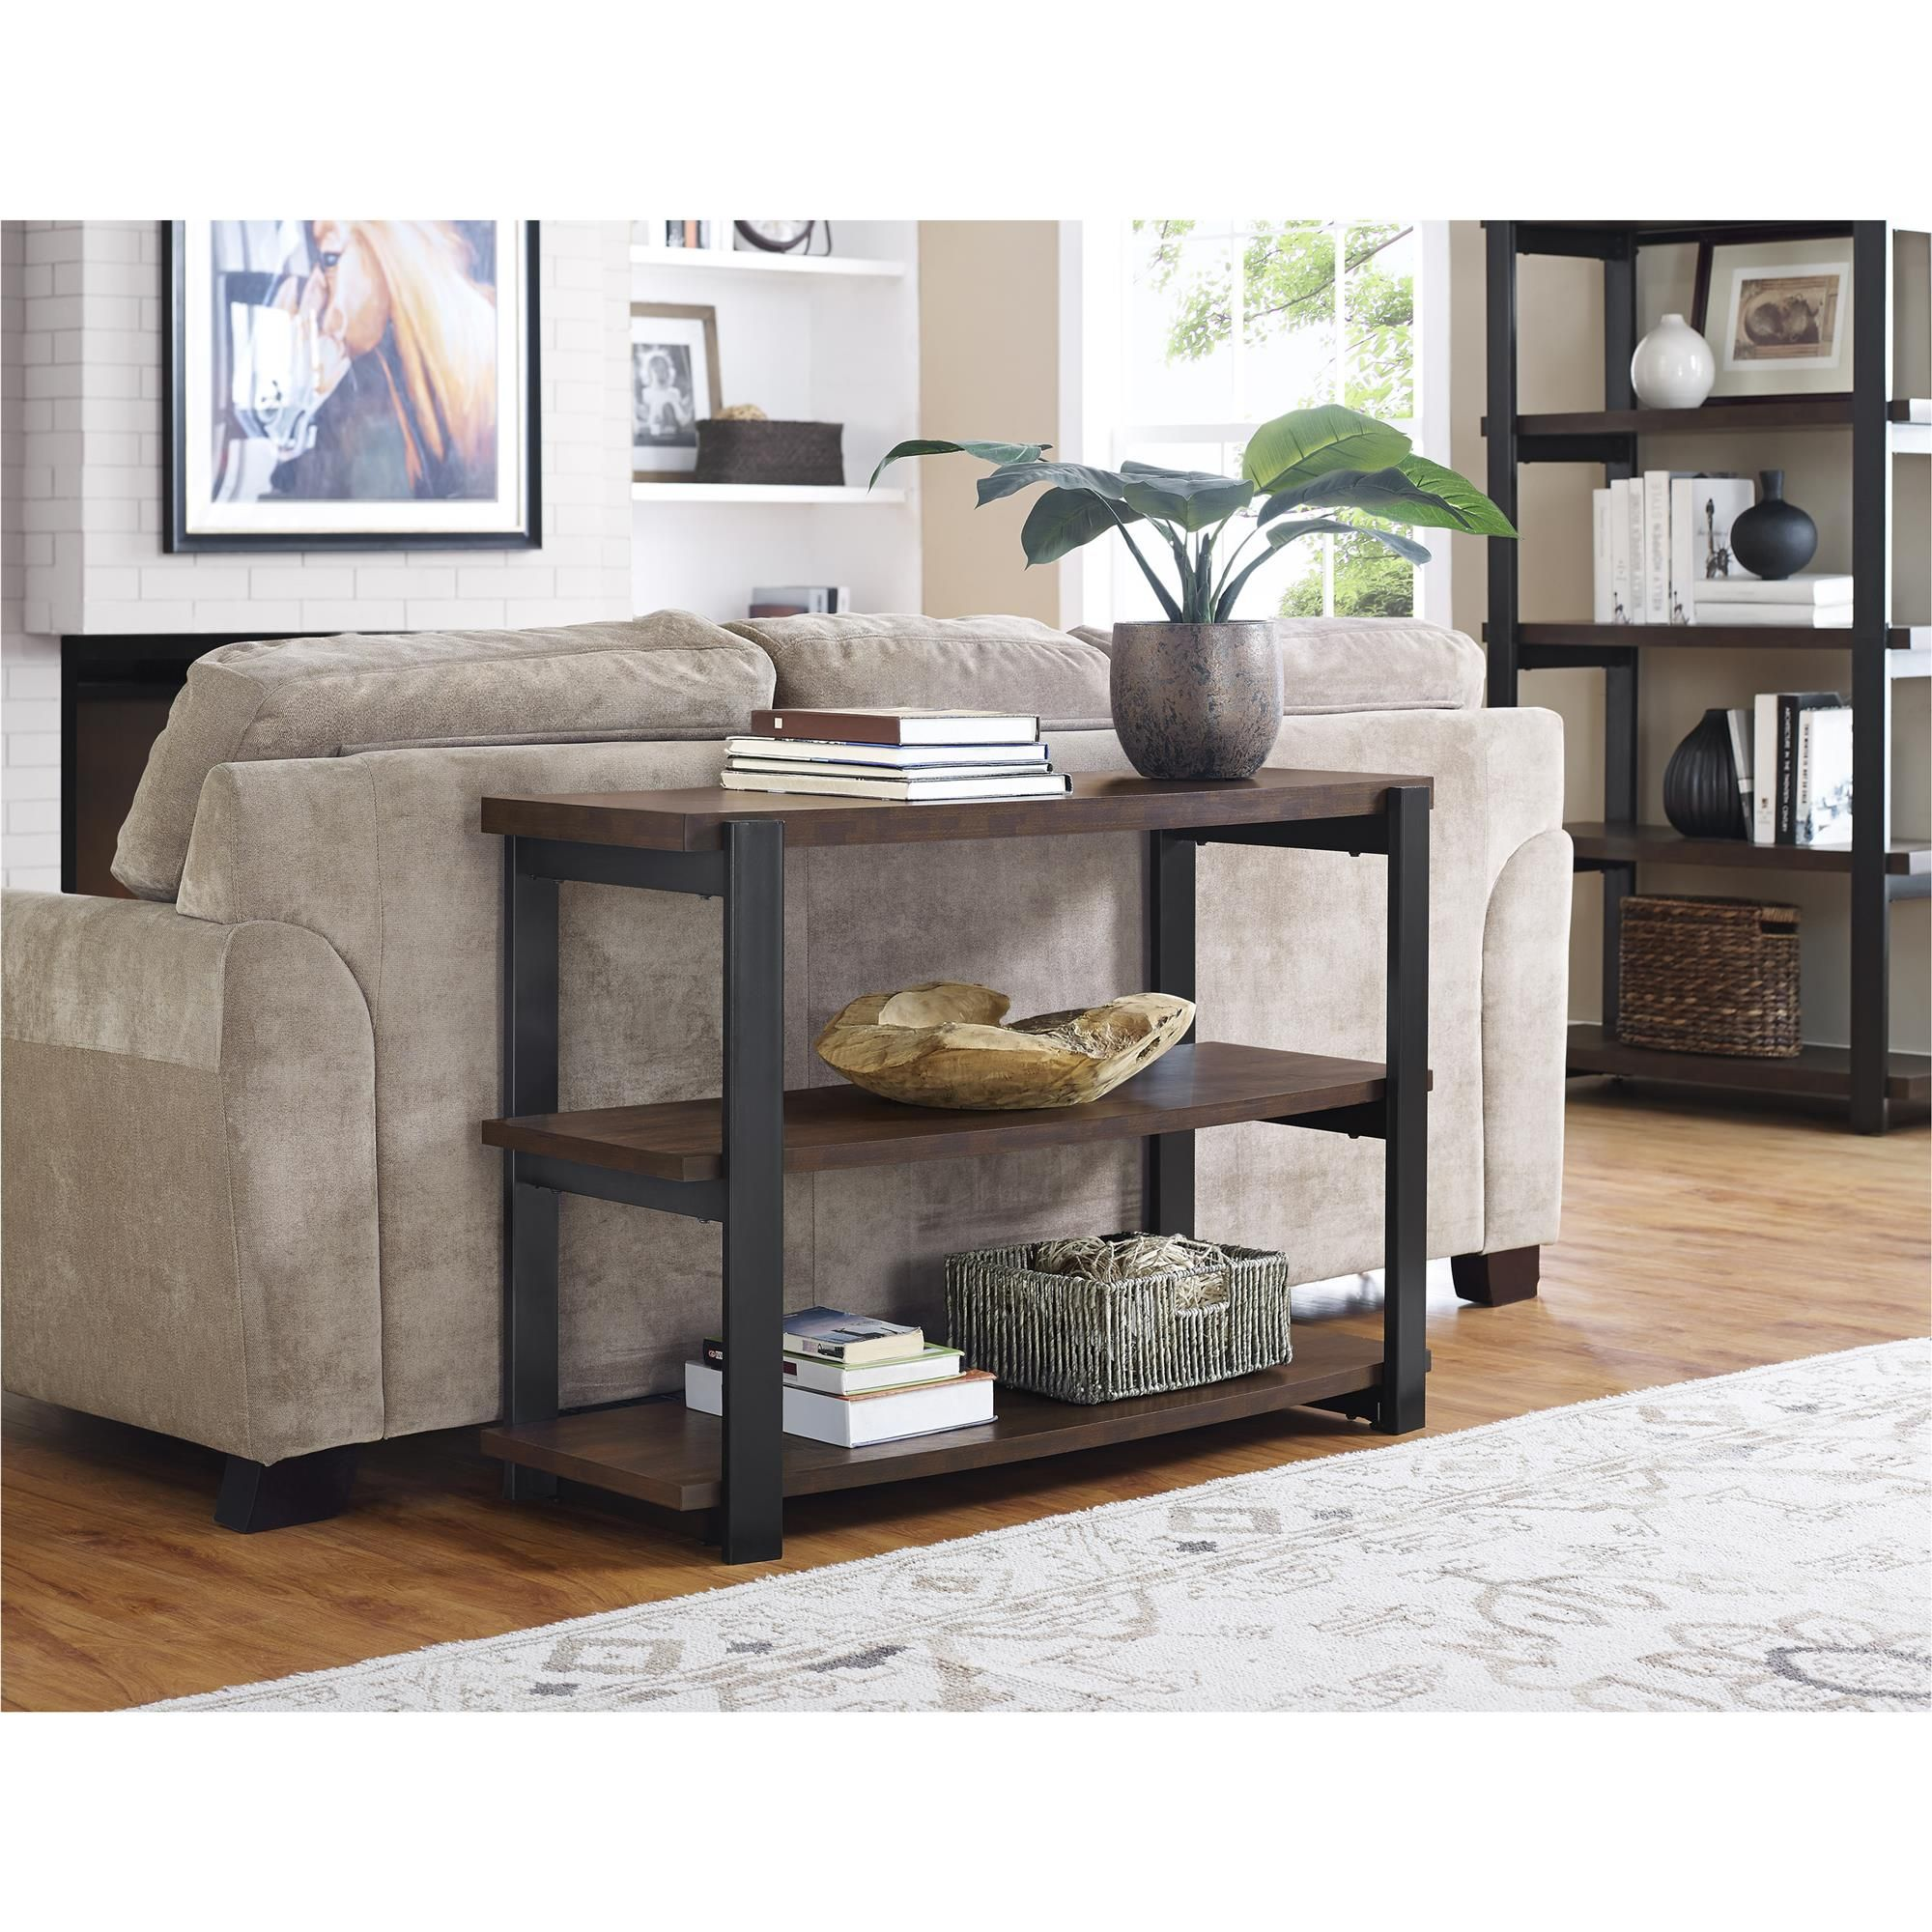 Add The Ameriwood Home Castling Console Table To Your